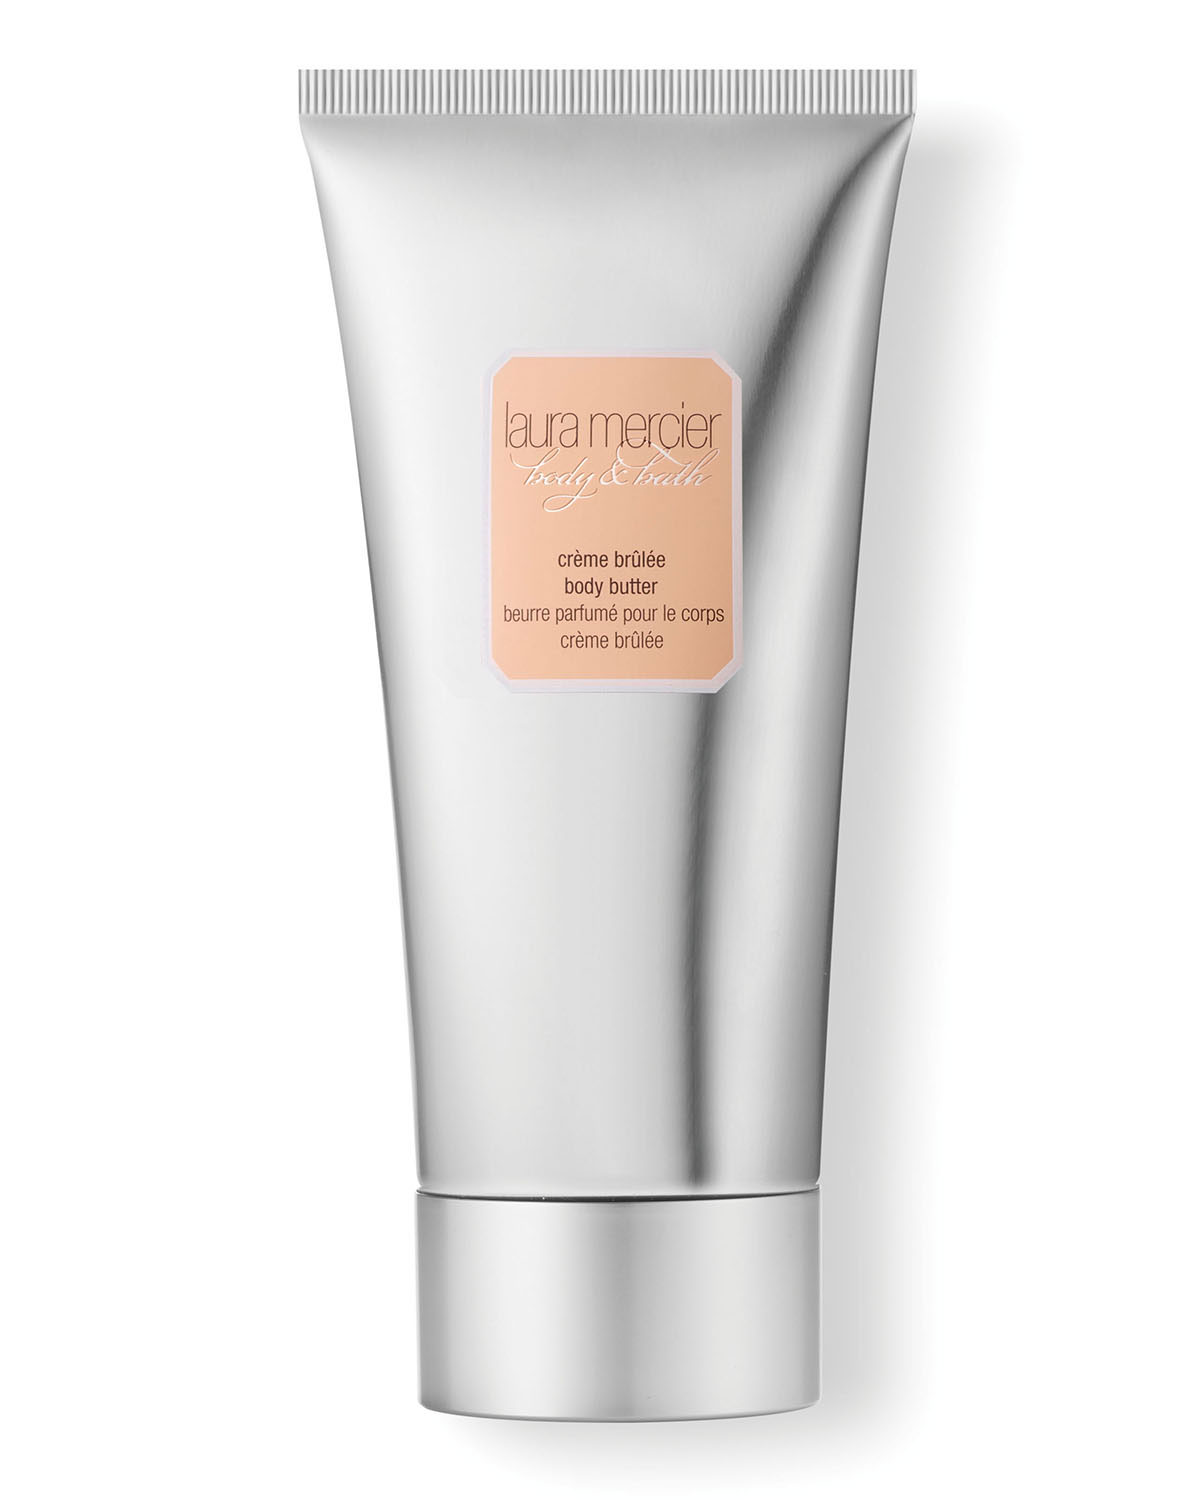 Body Butter, Creme Brulee - Laura Mercier